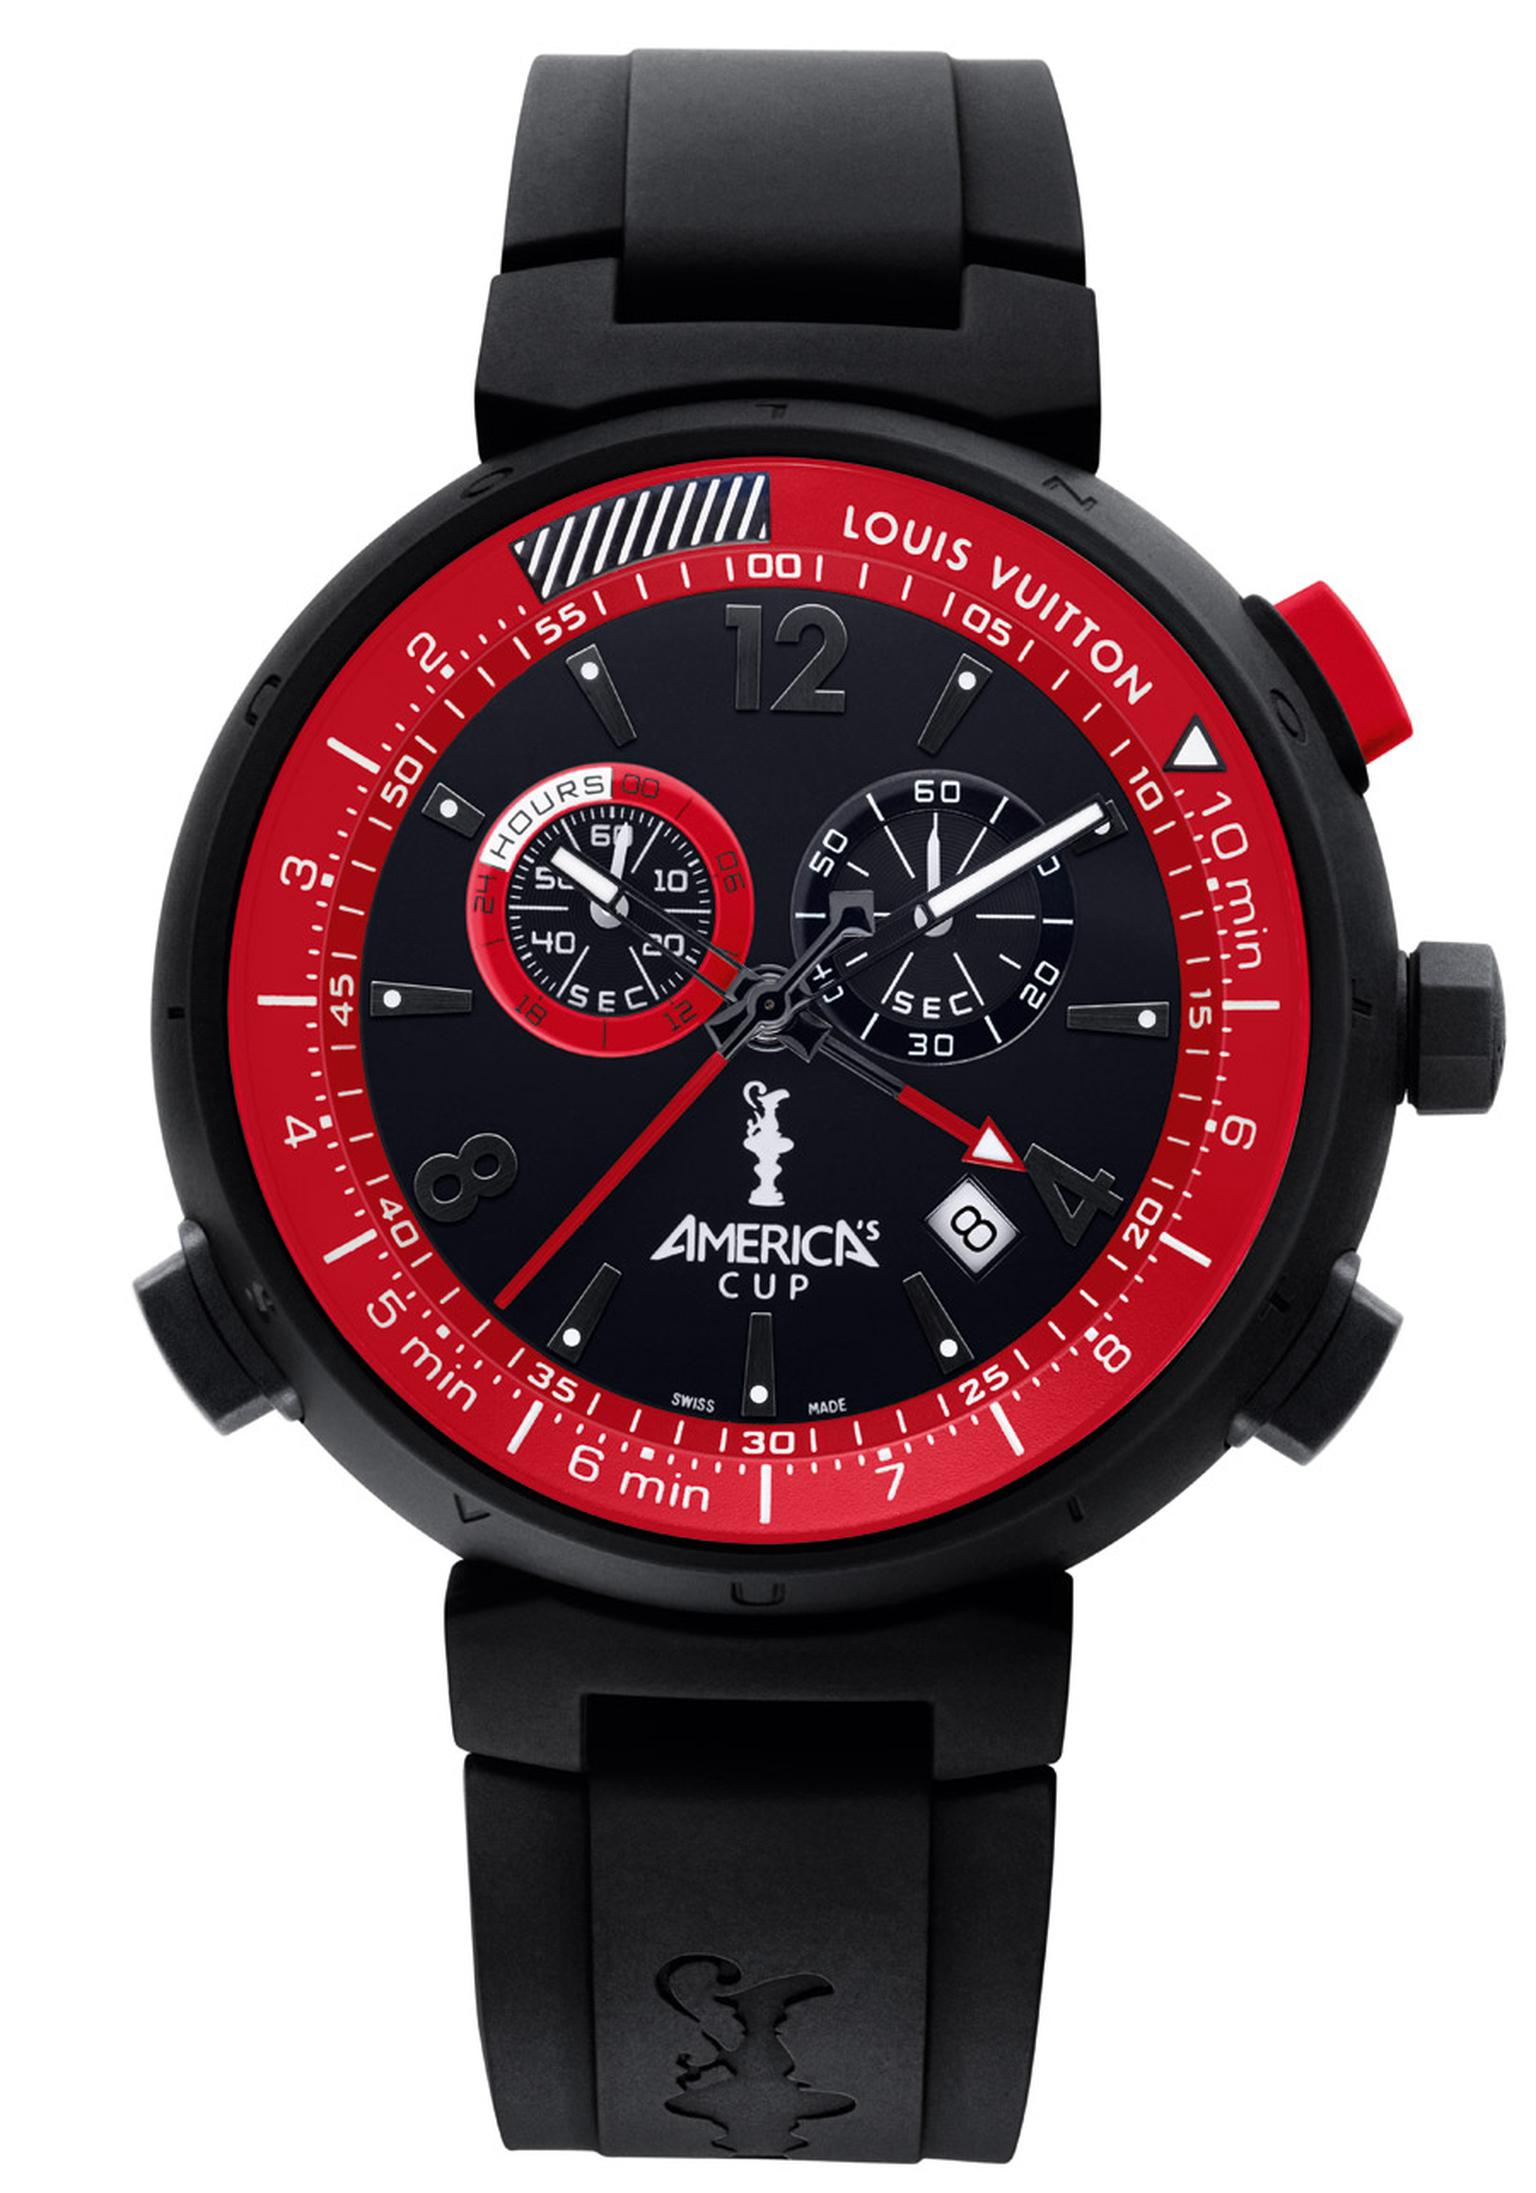 Louis-Vuitton-Regate-Americas-Cup-Quartz.jpg